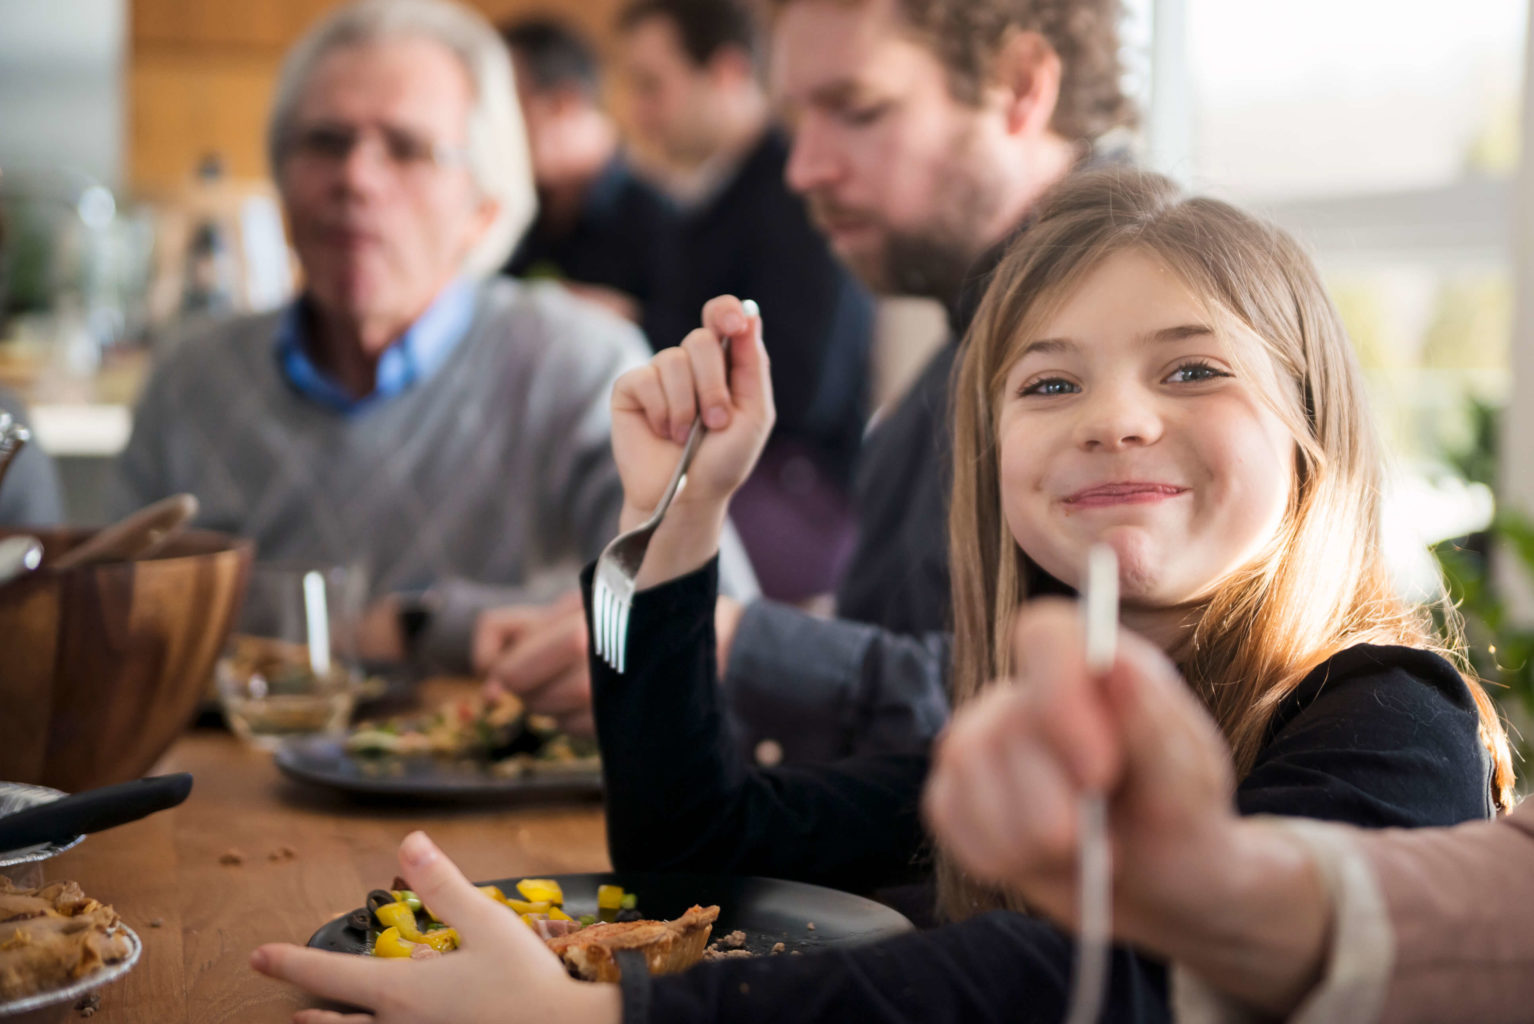 Children should eat the same as adults